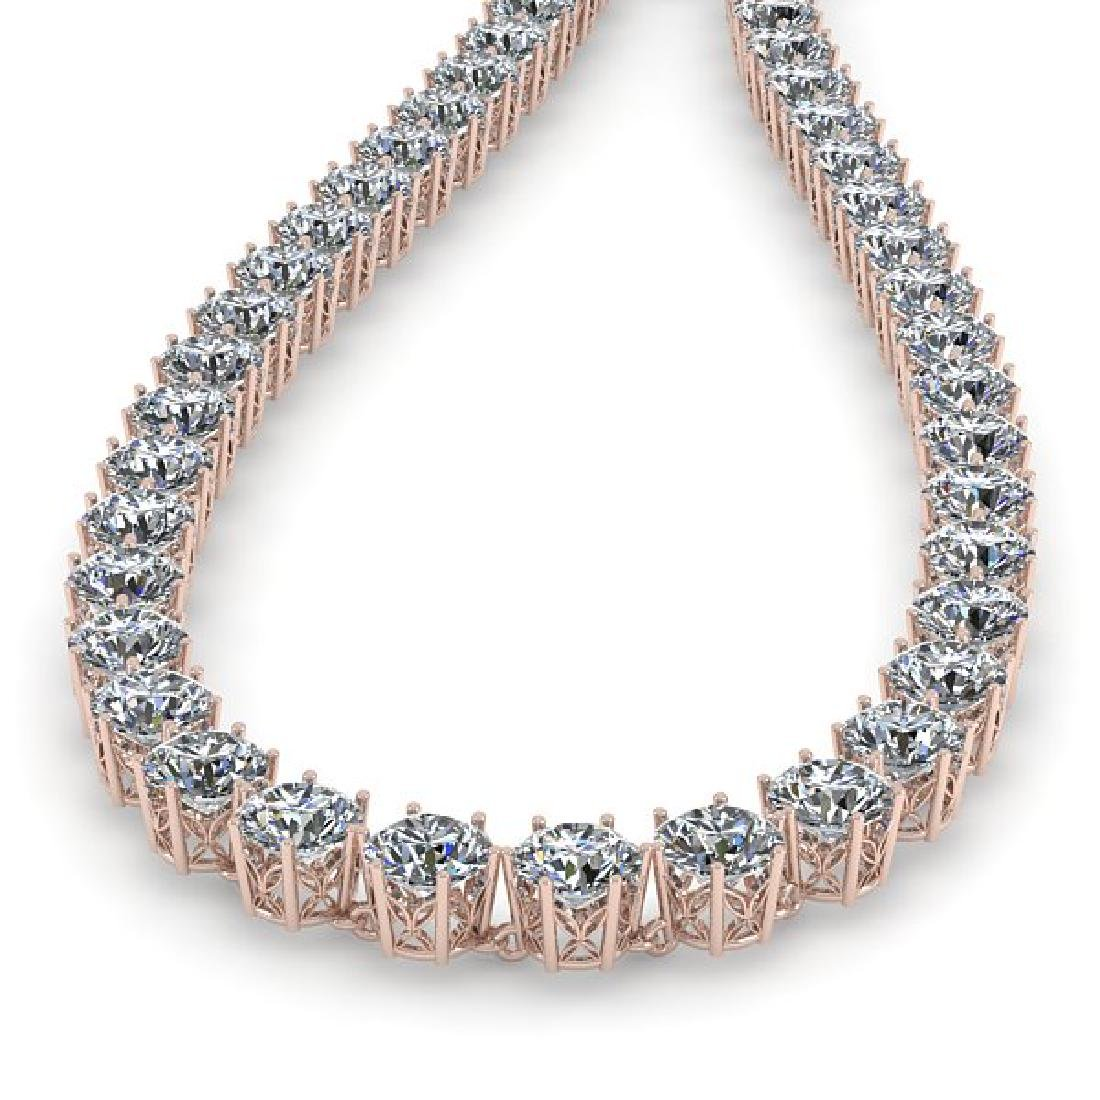 29 CTW SI Certified Diamond Necklace 18K Rose Gold - 2